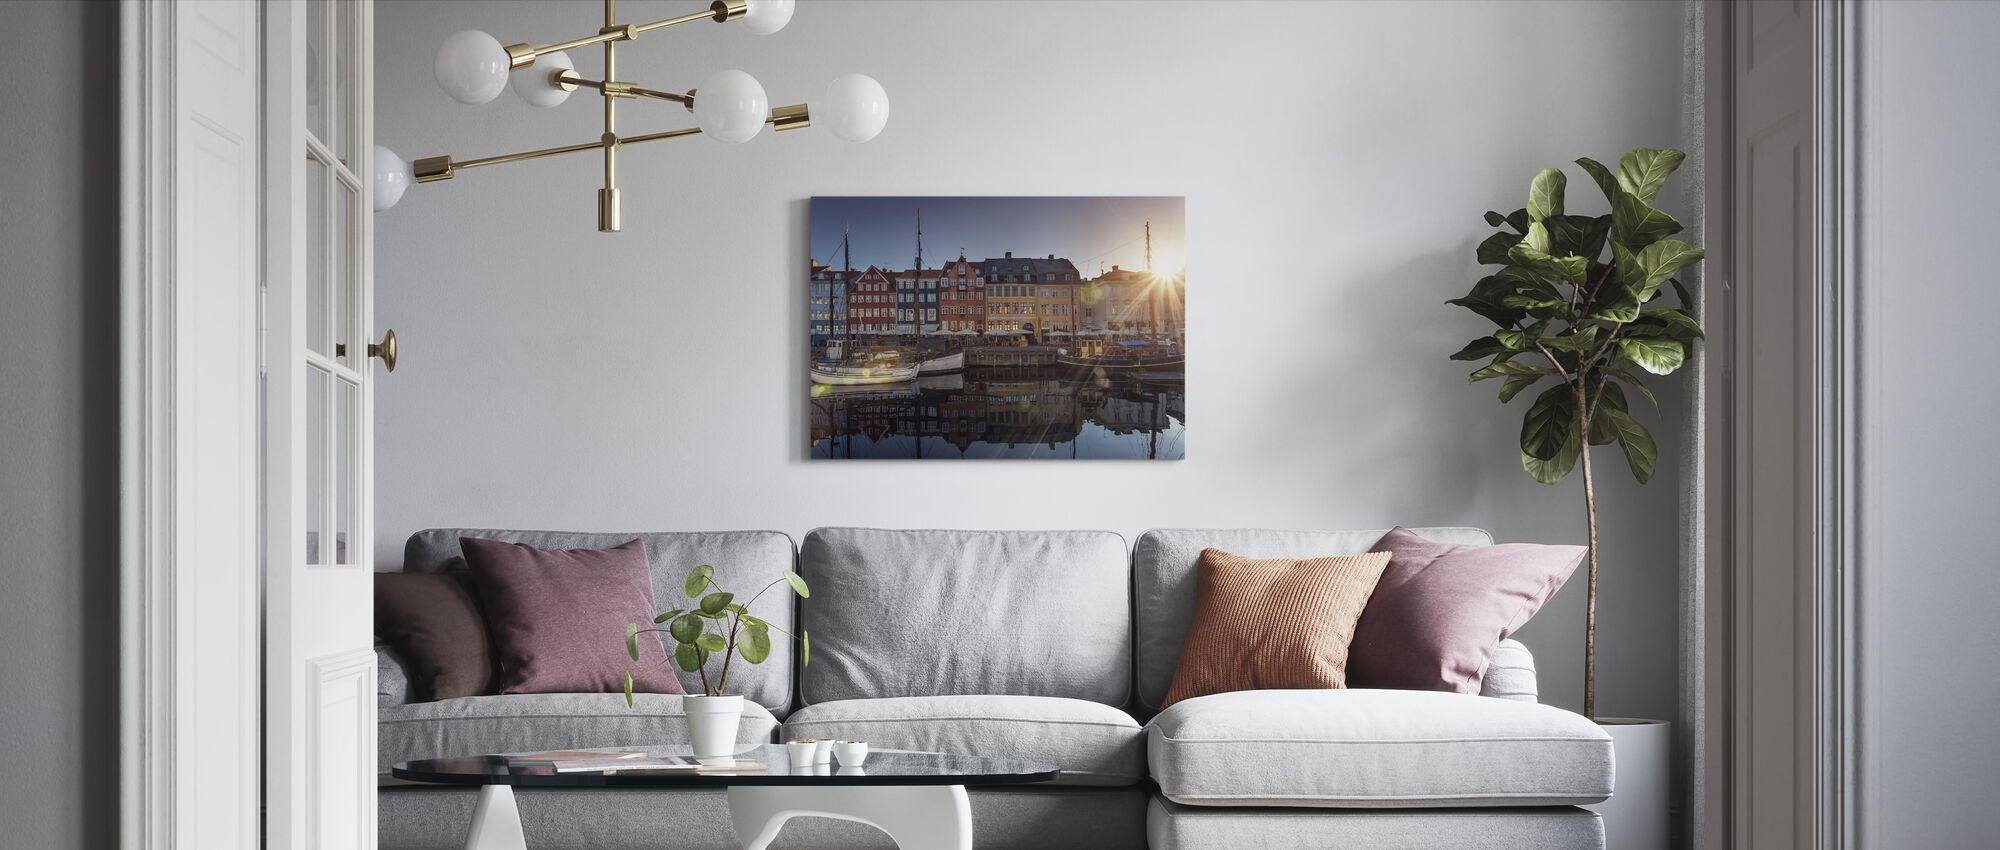 Sunset in Nyhavn, Copenhagen, Denmark - Canvas print - Living Room